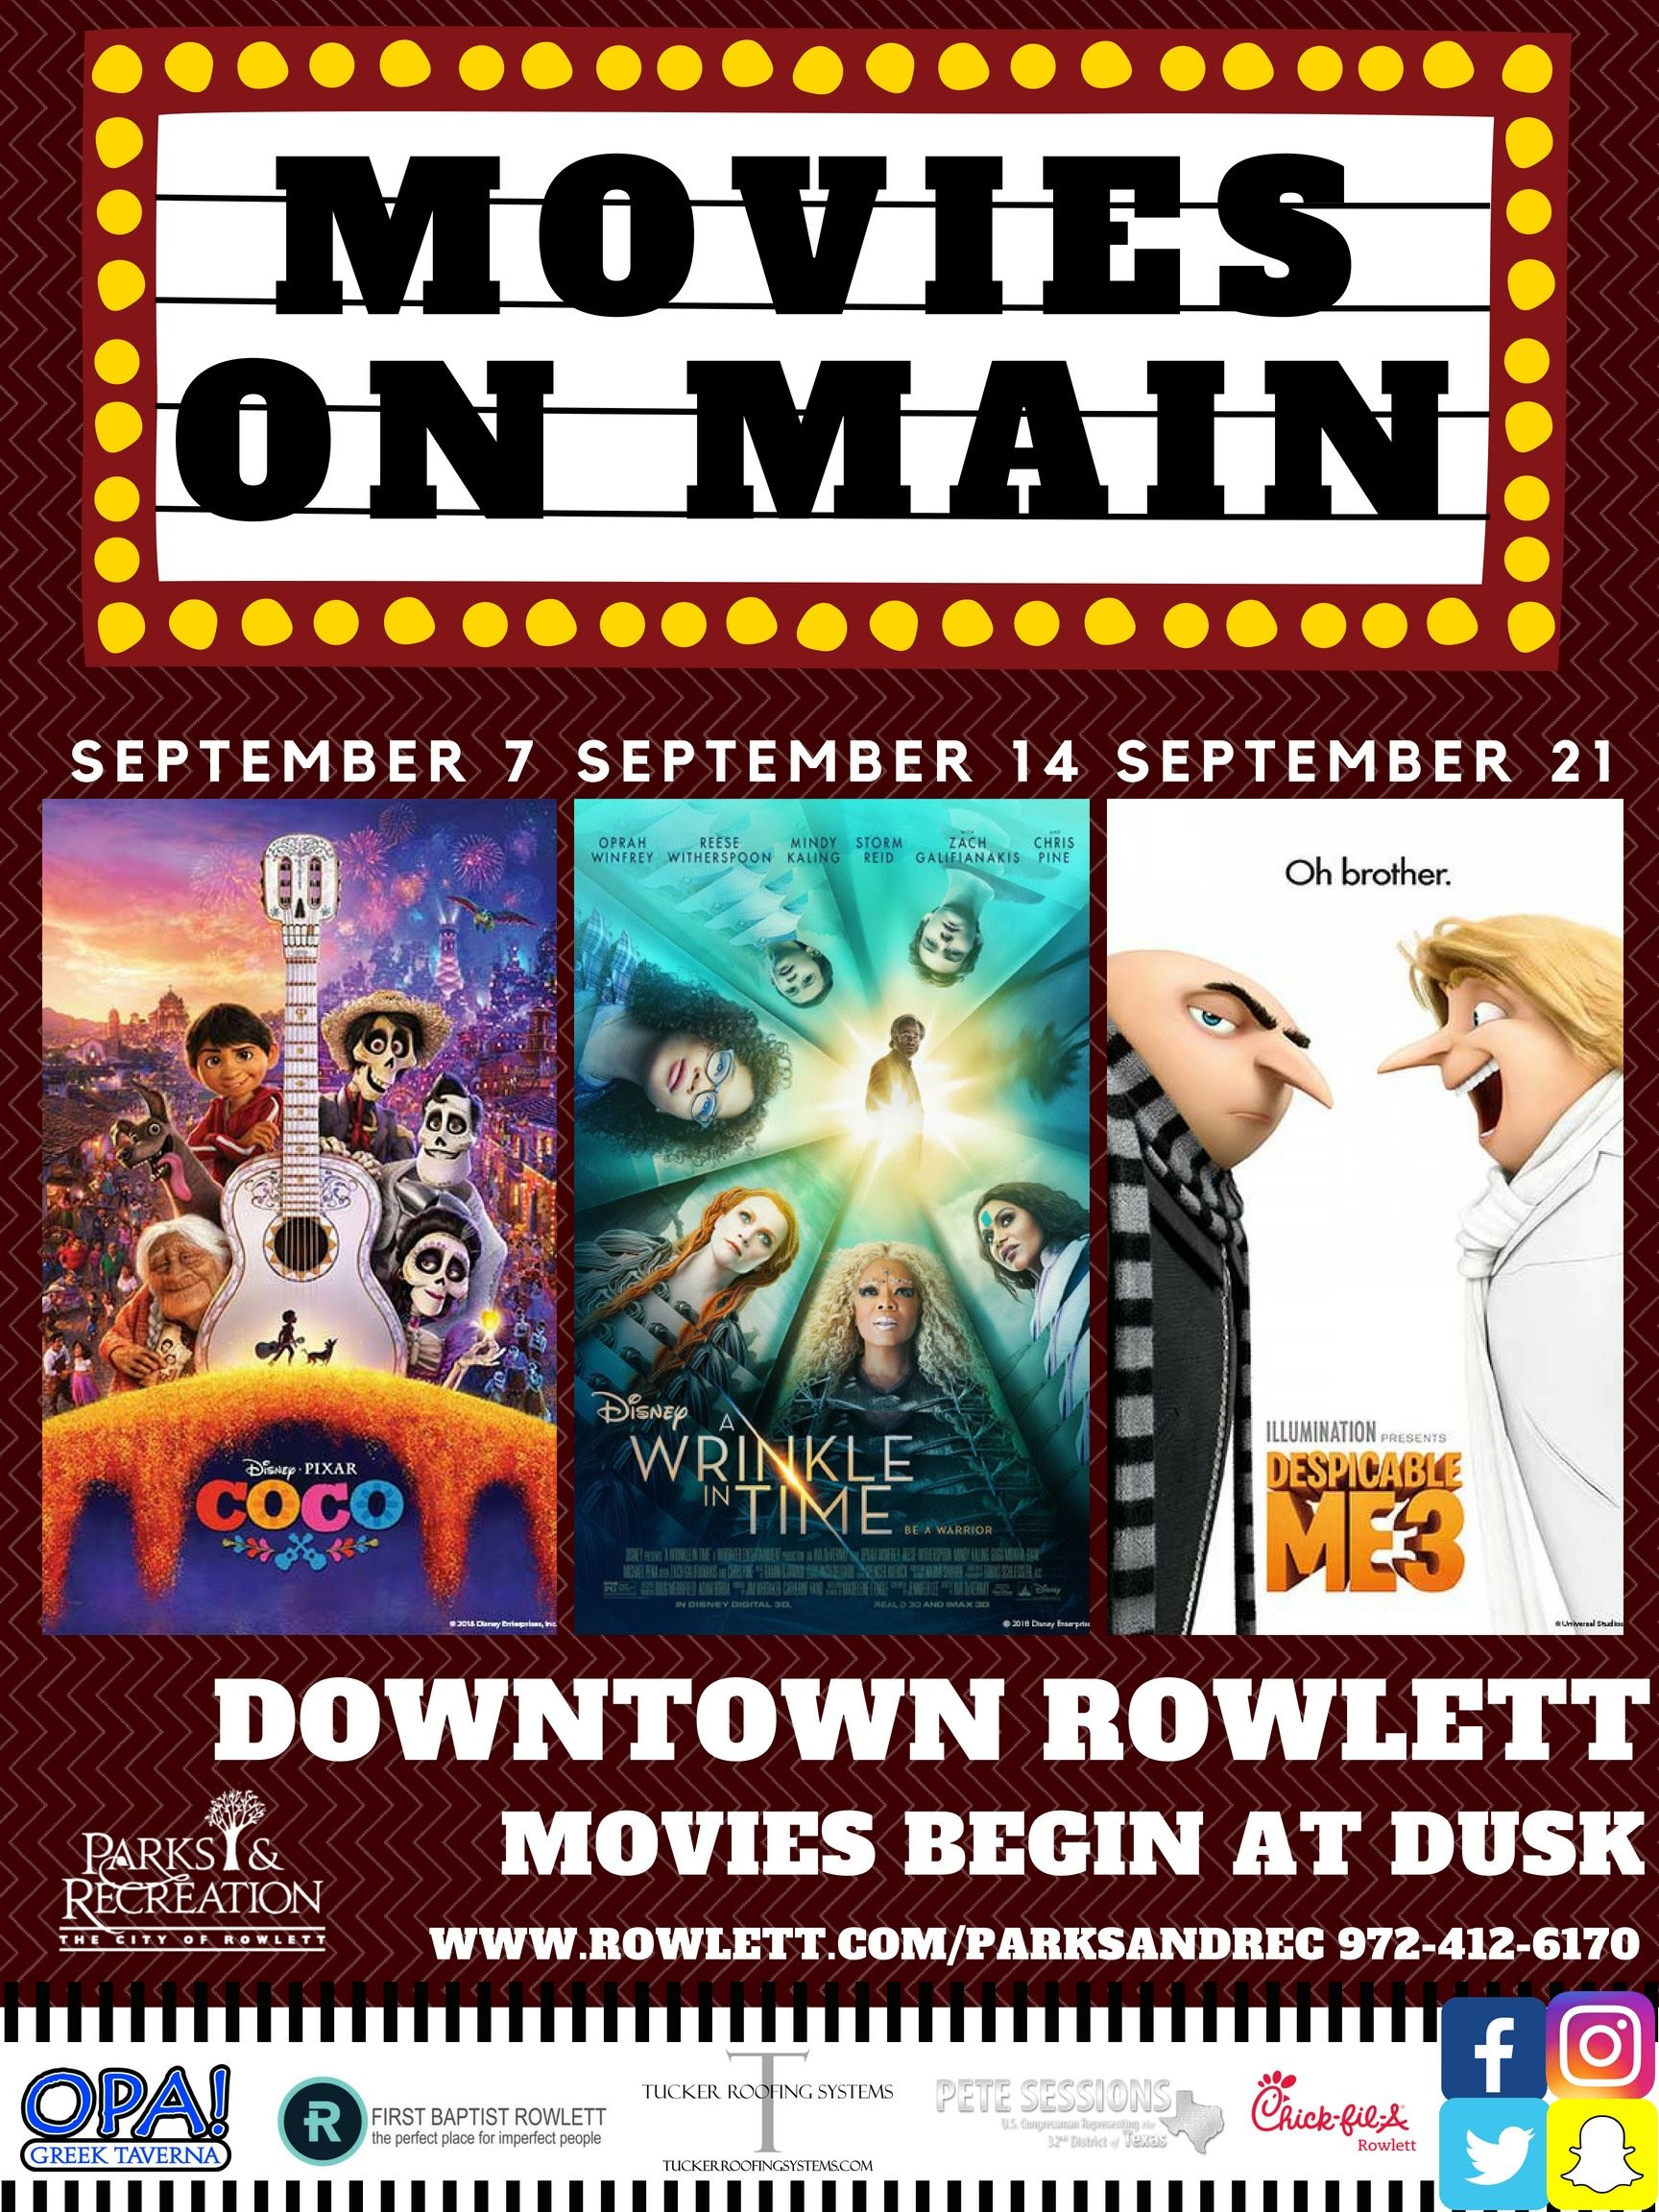 Movies on Main Flyer